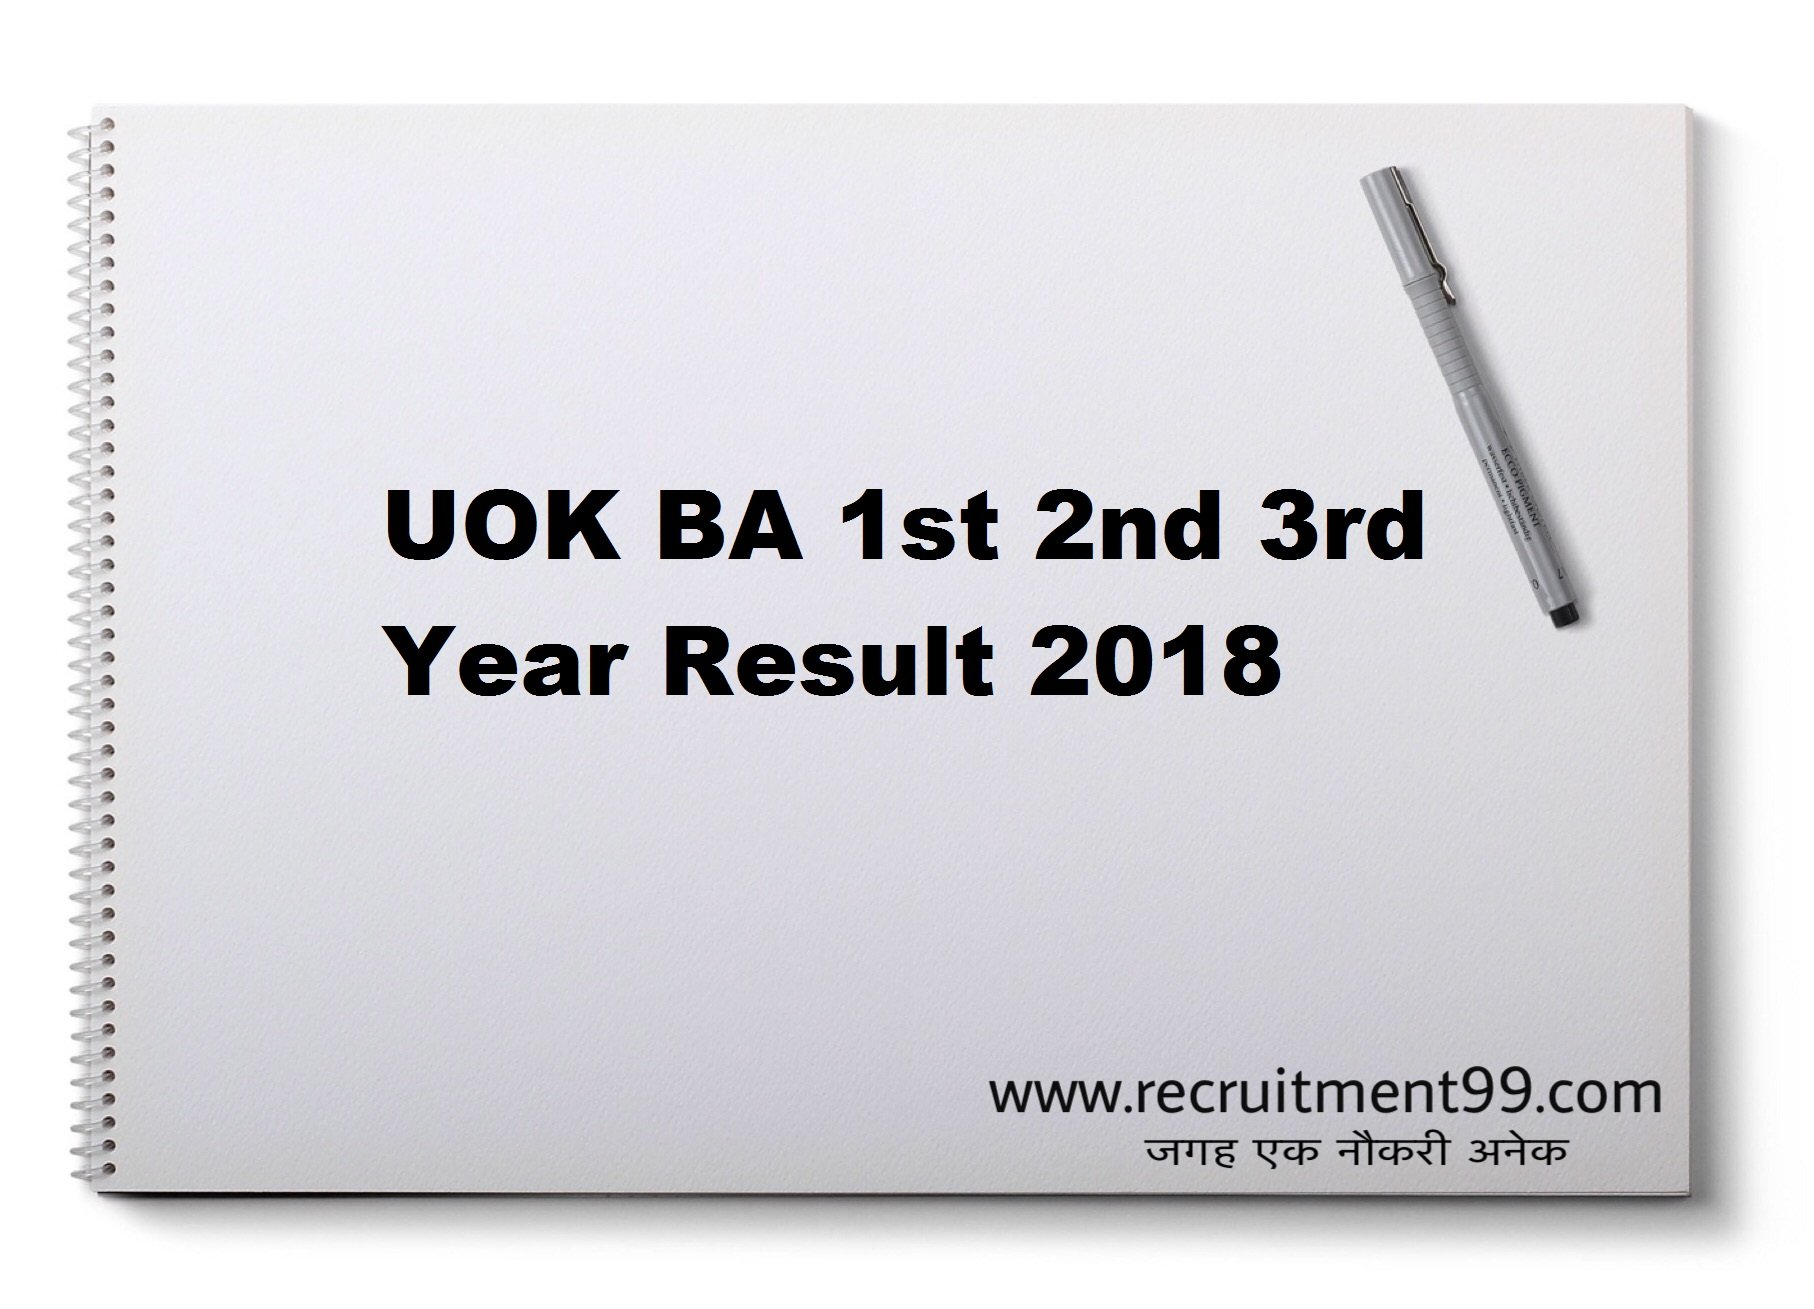 UOK BA 1st 2nd 3rd Year Result 2018